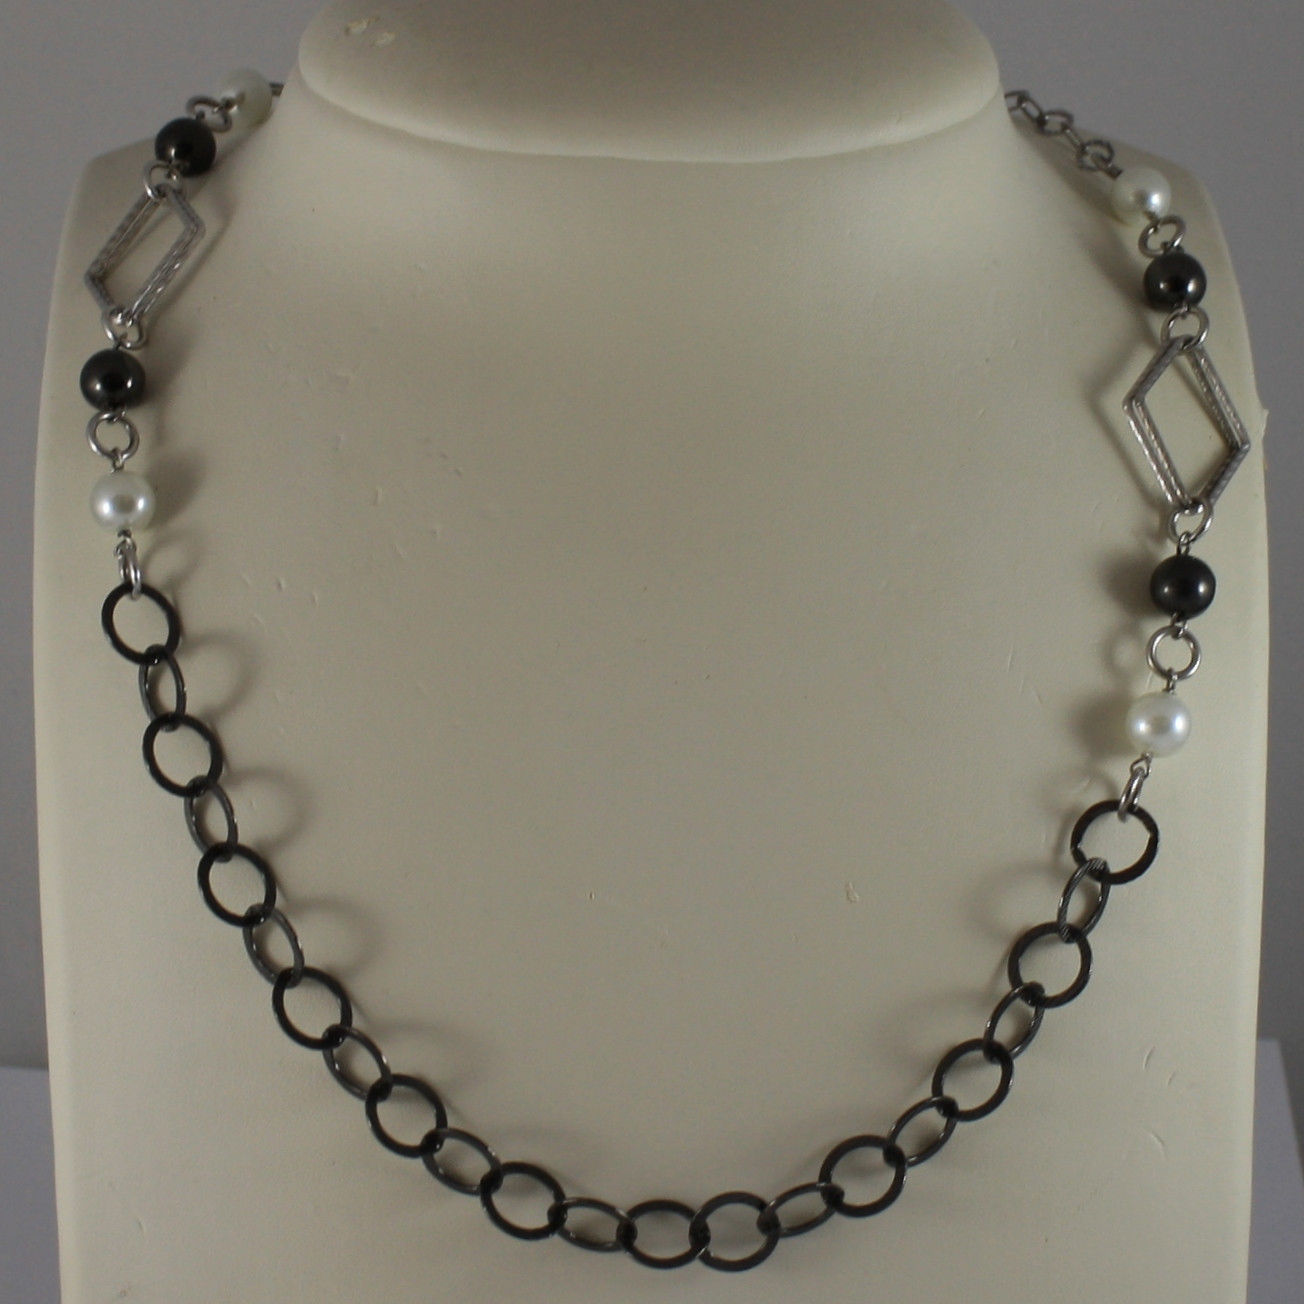 .925 SILVER RHODIUM BURNISHED NECKLACE WITH SYNTHETIC WHITE PEARLS AND RHOMBUS